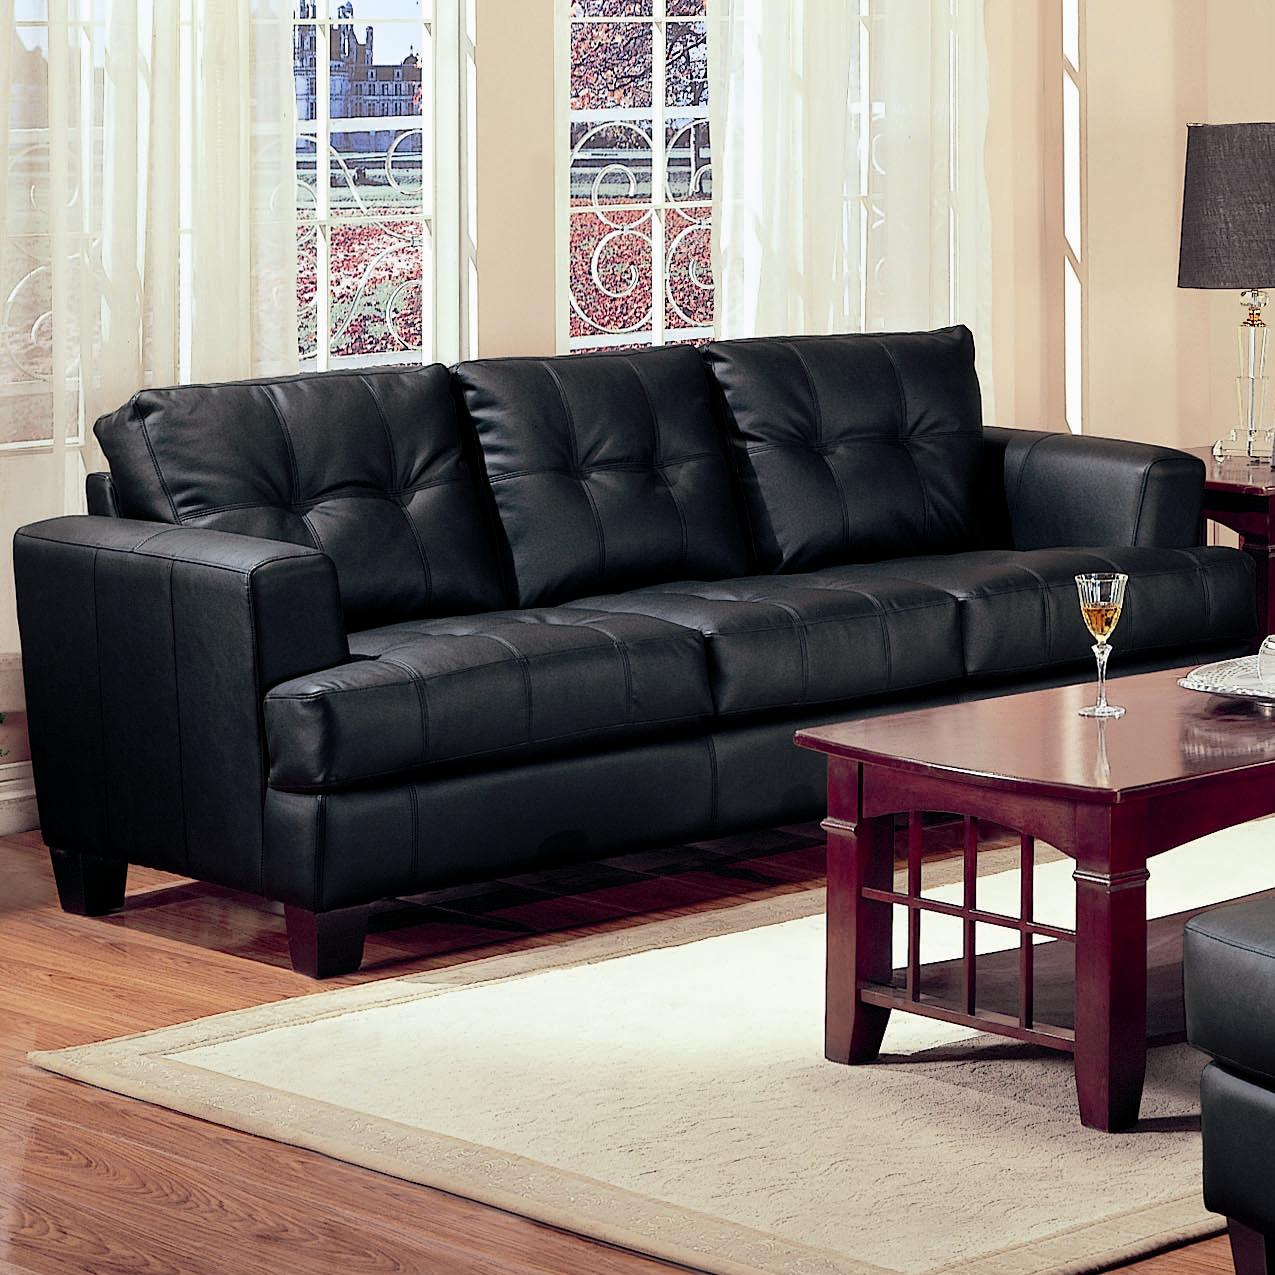 Ordinary Black Leather Couch Part - 10: Samuel Black Leather Sofa